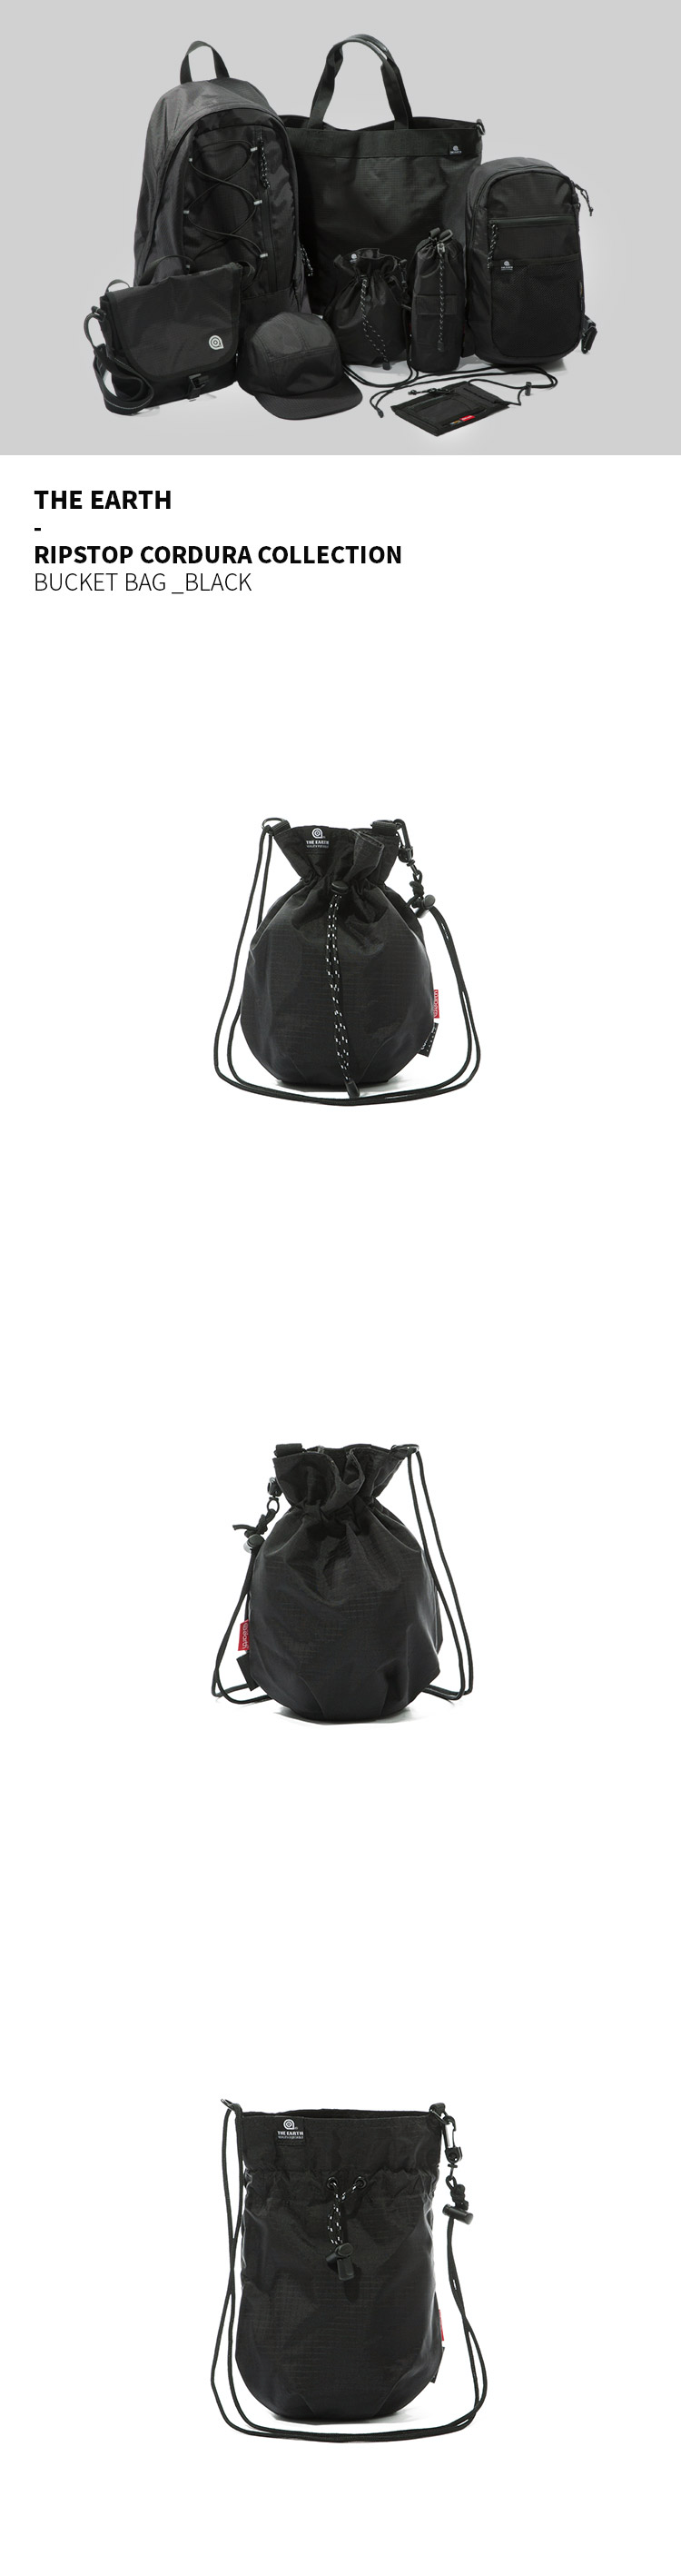 디얼스(THE EARTH) RIPSTOP CORDURA BUCKET BAG - BLACK